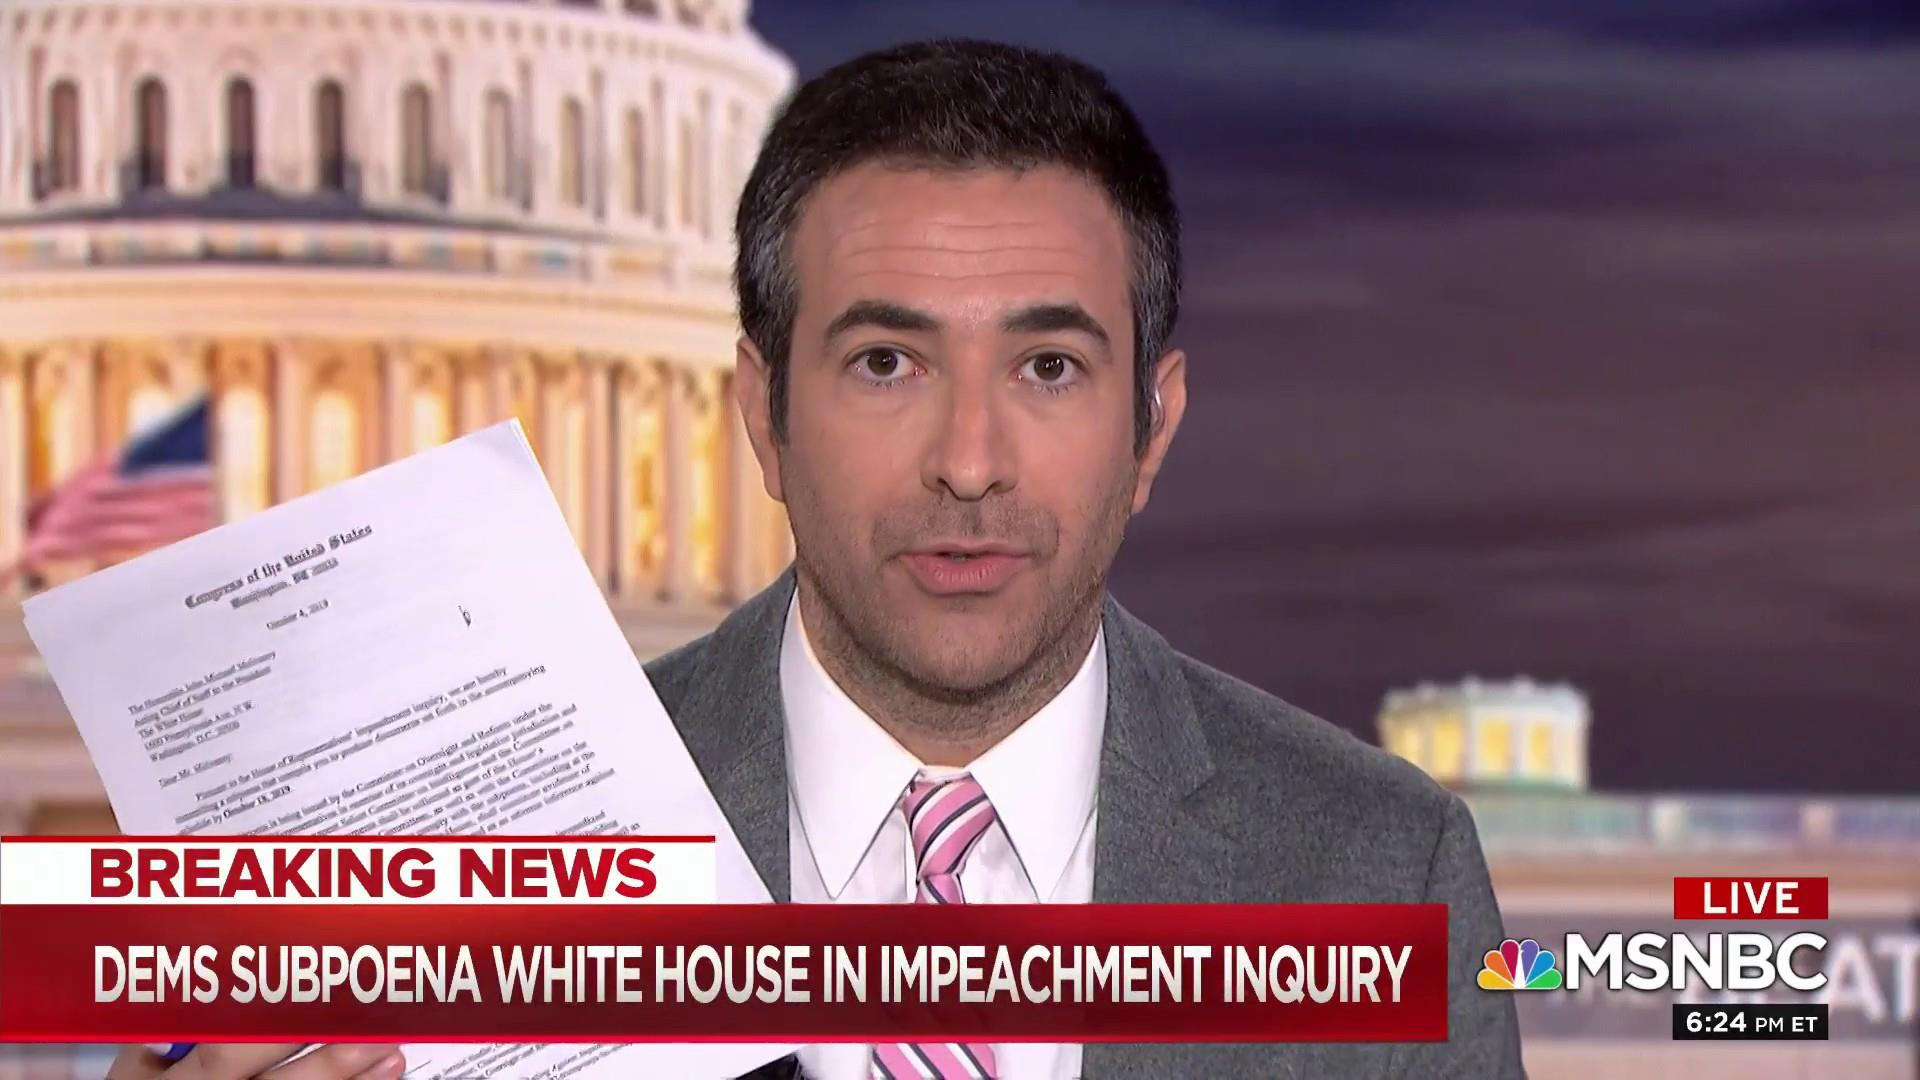 House Dems subpoena White House for key documents in impeachment inquiry